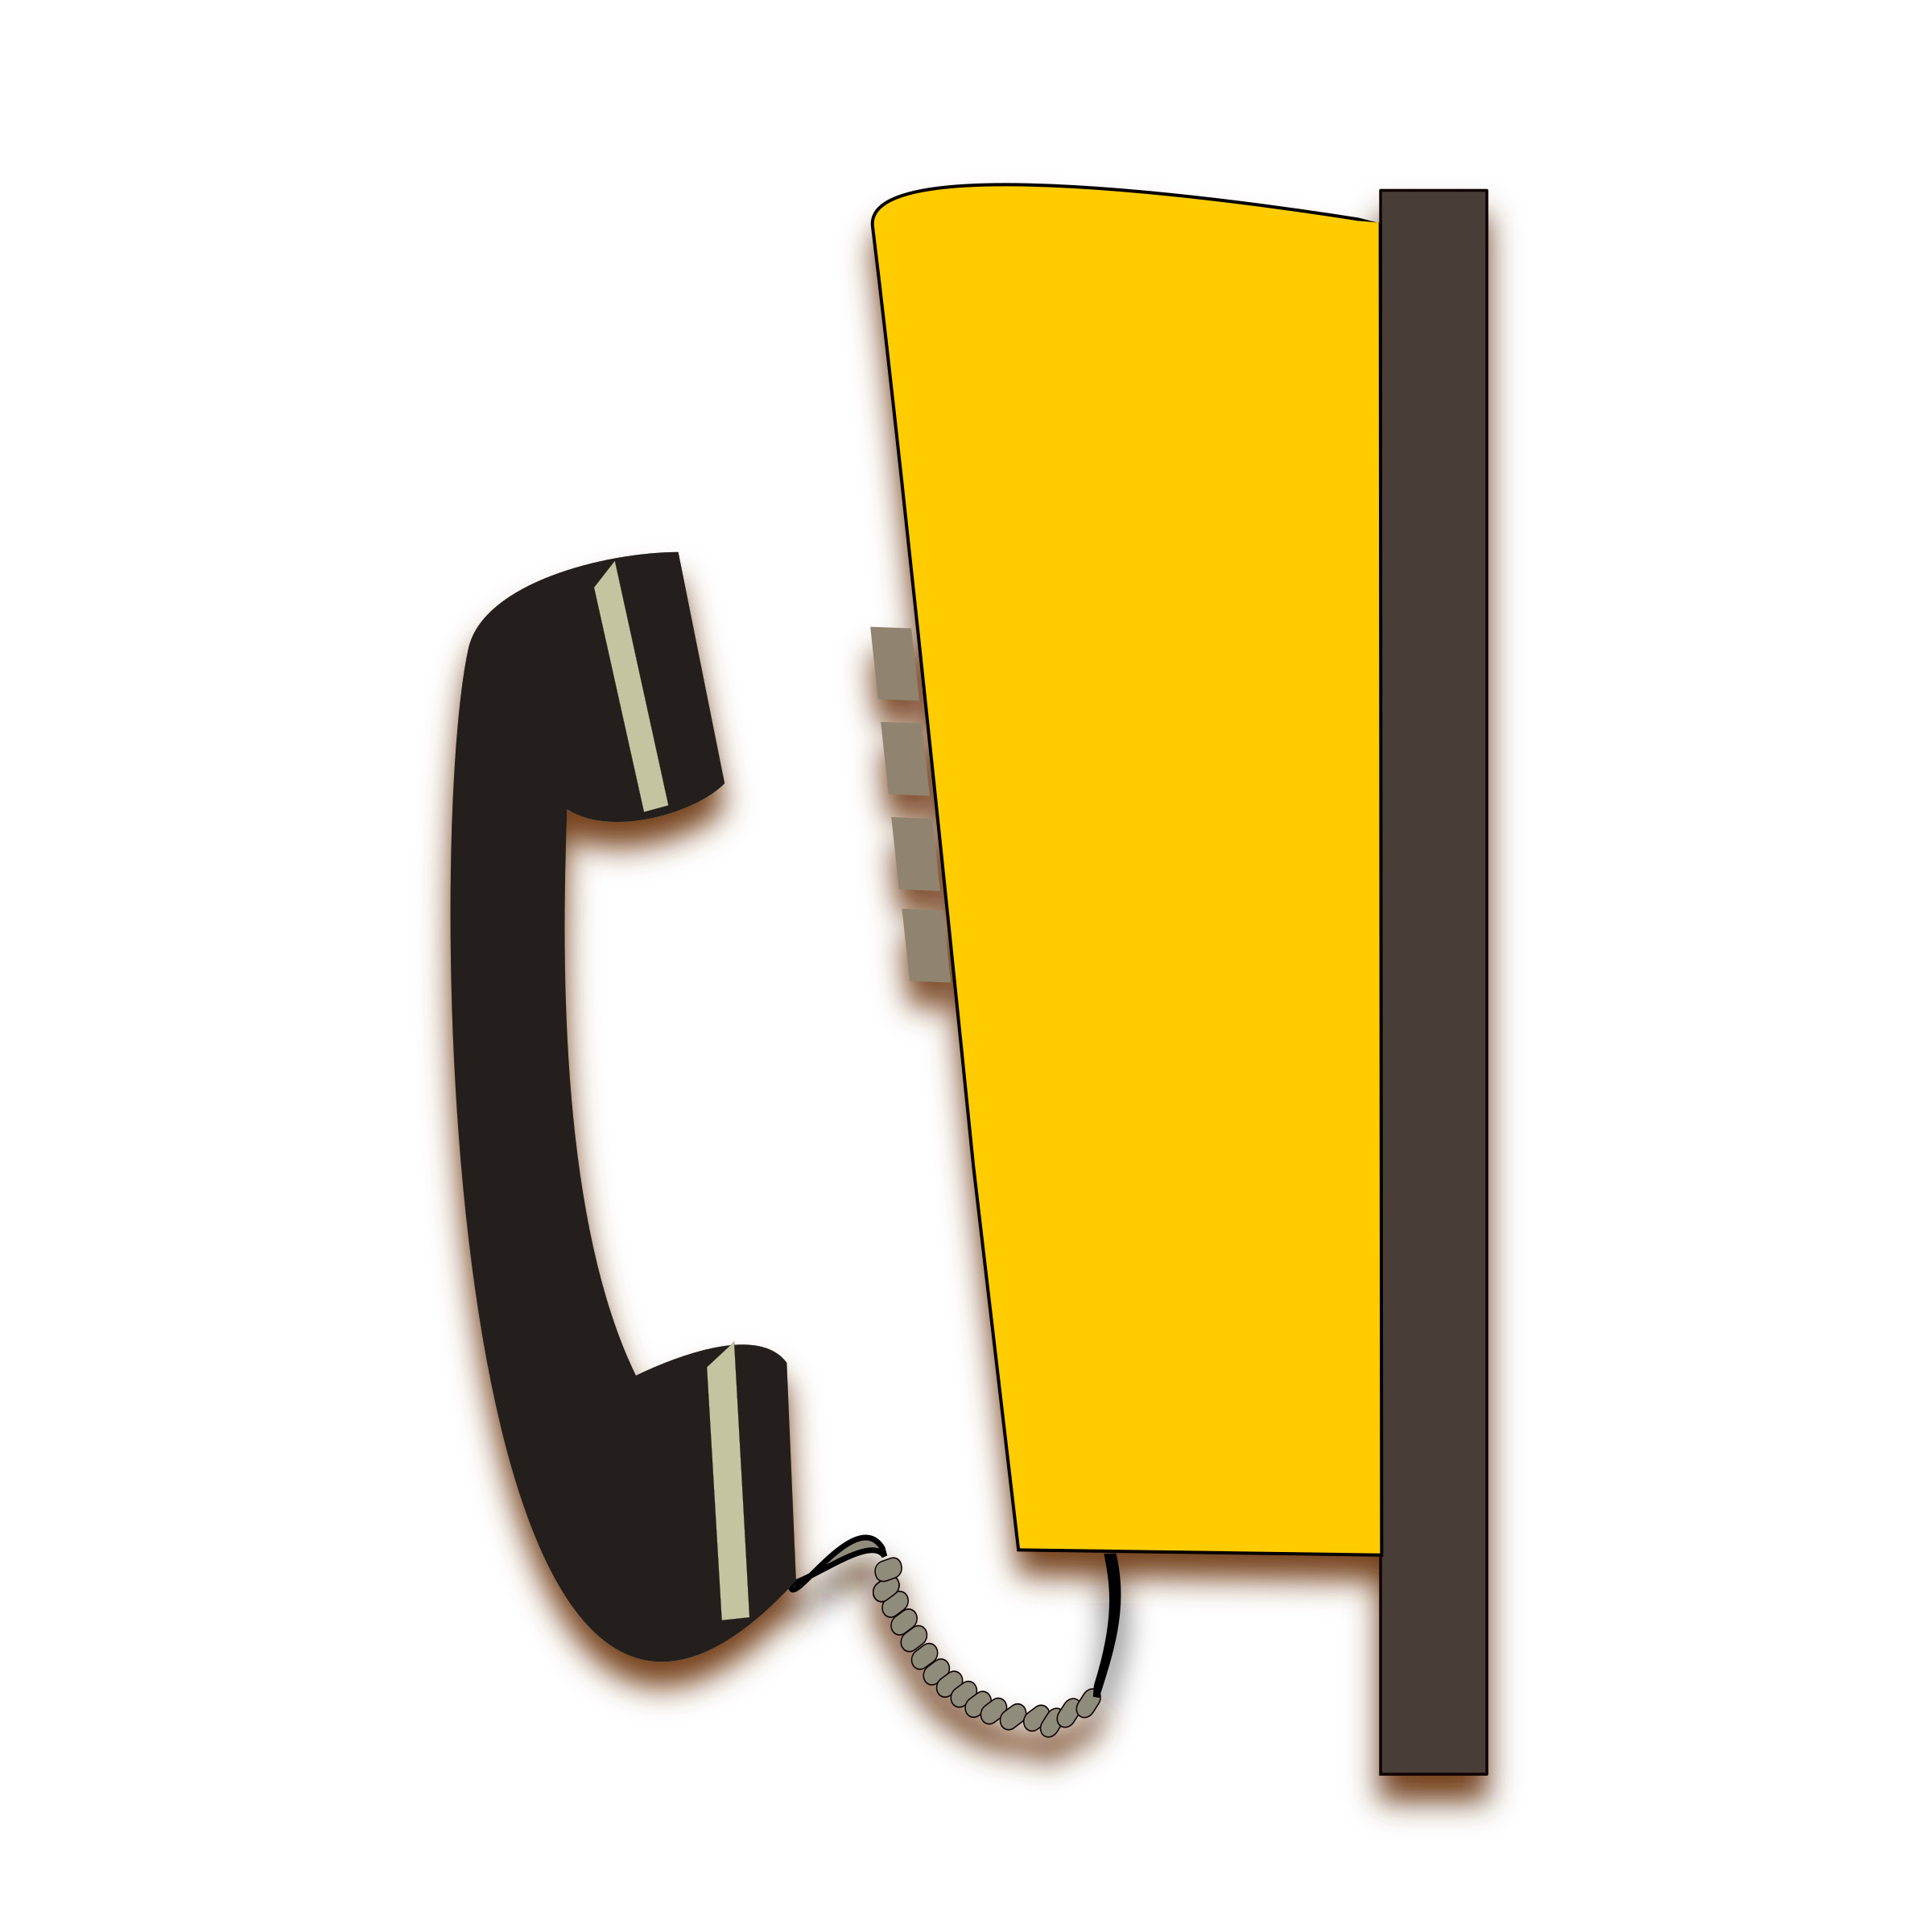 Clipart telephone yellow telephone. Public big image png